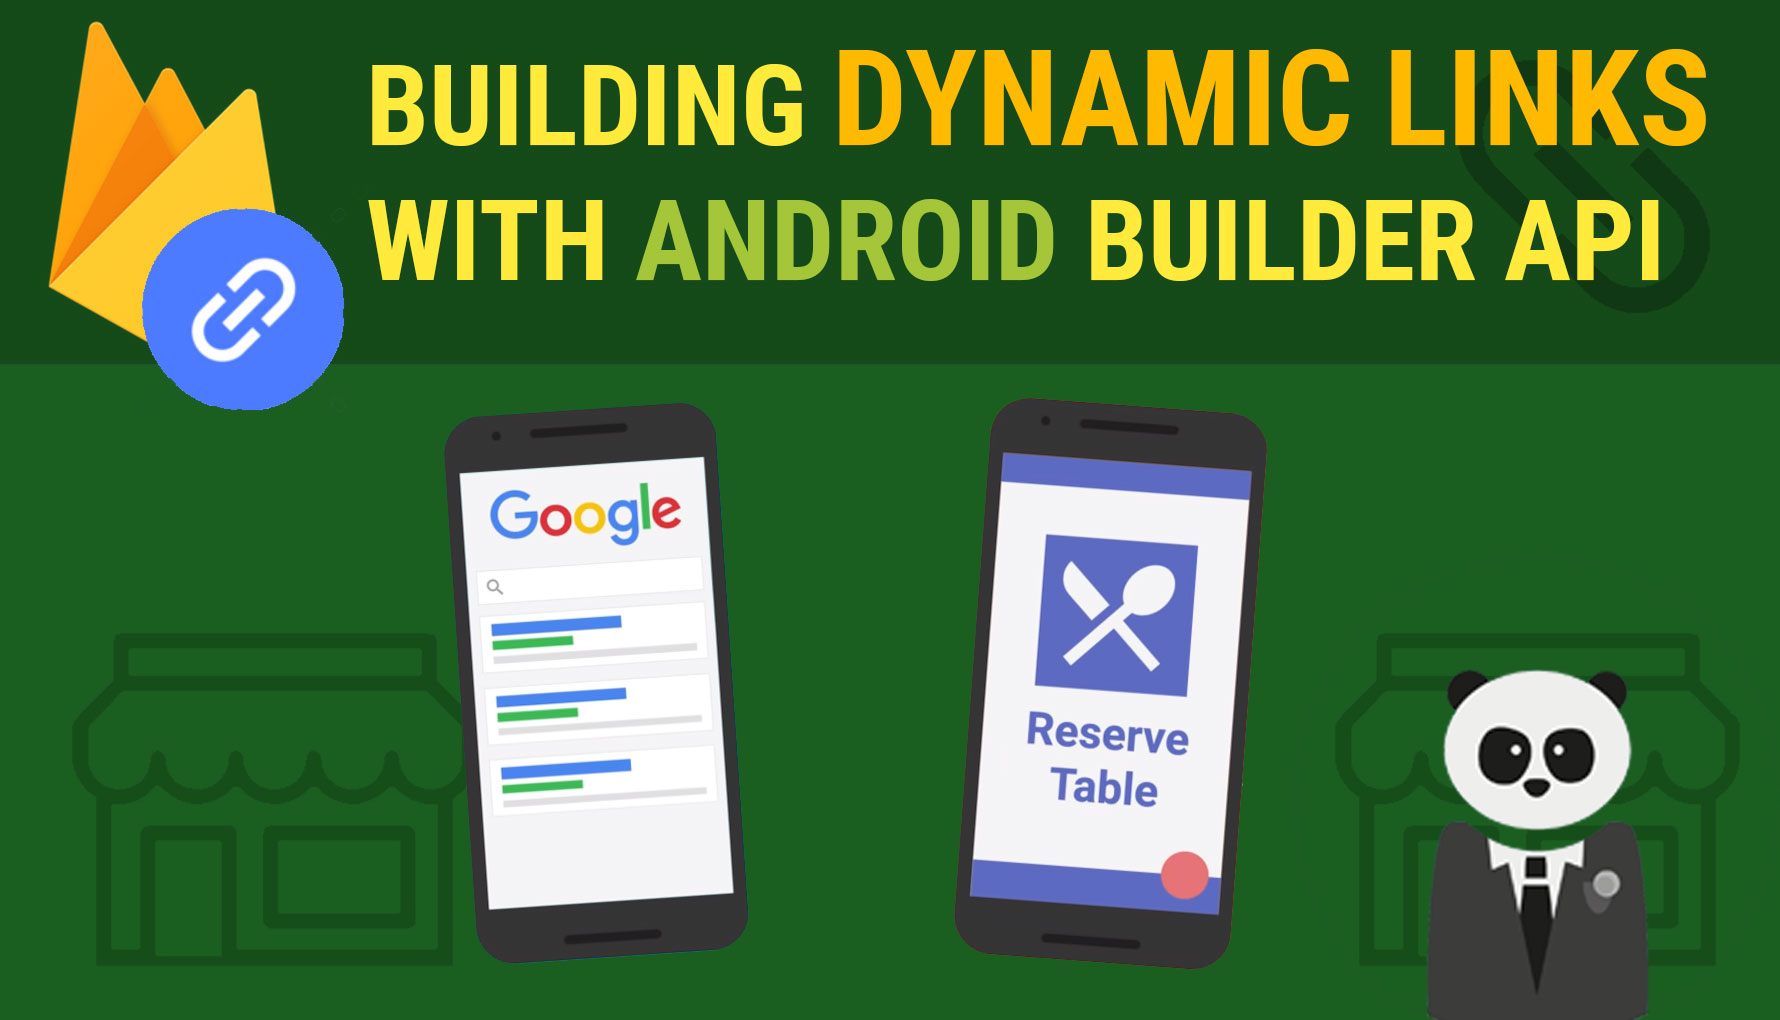 Building Firebase Dynamic Links with the Android Builder API